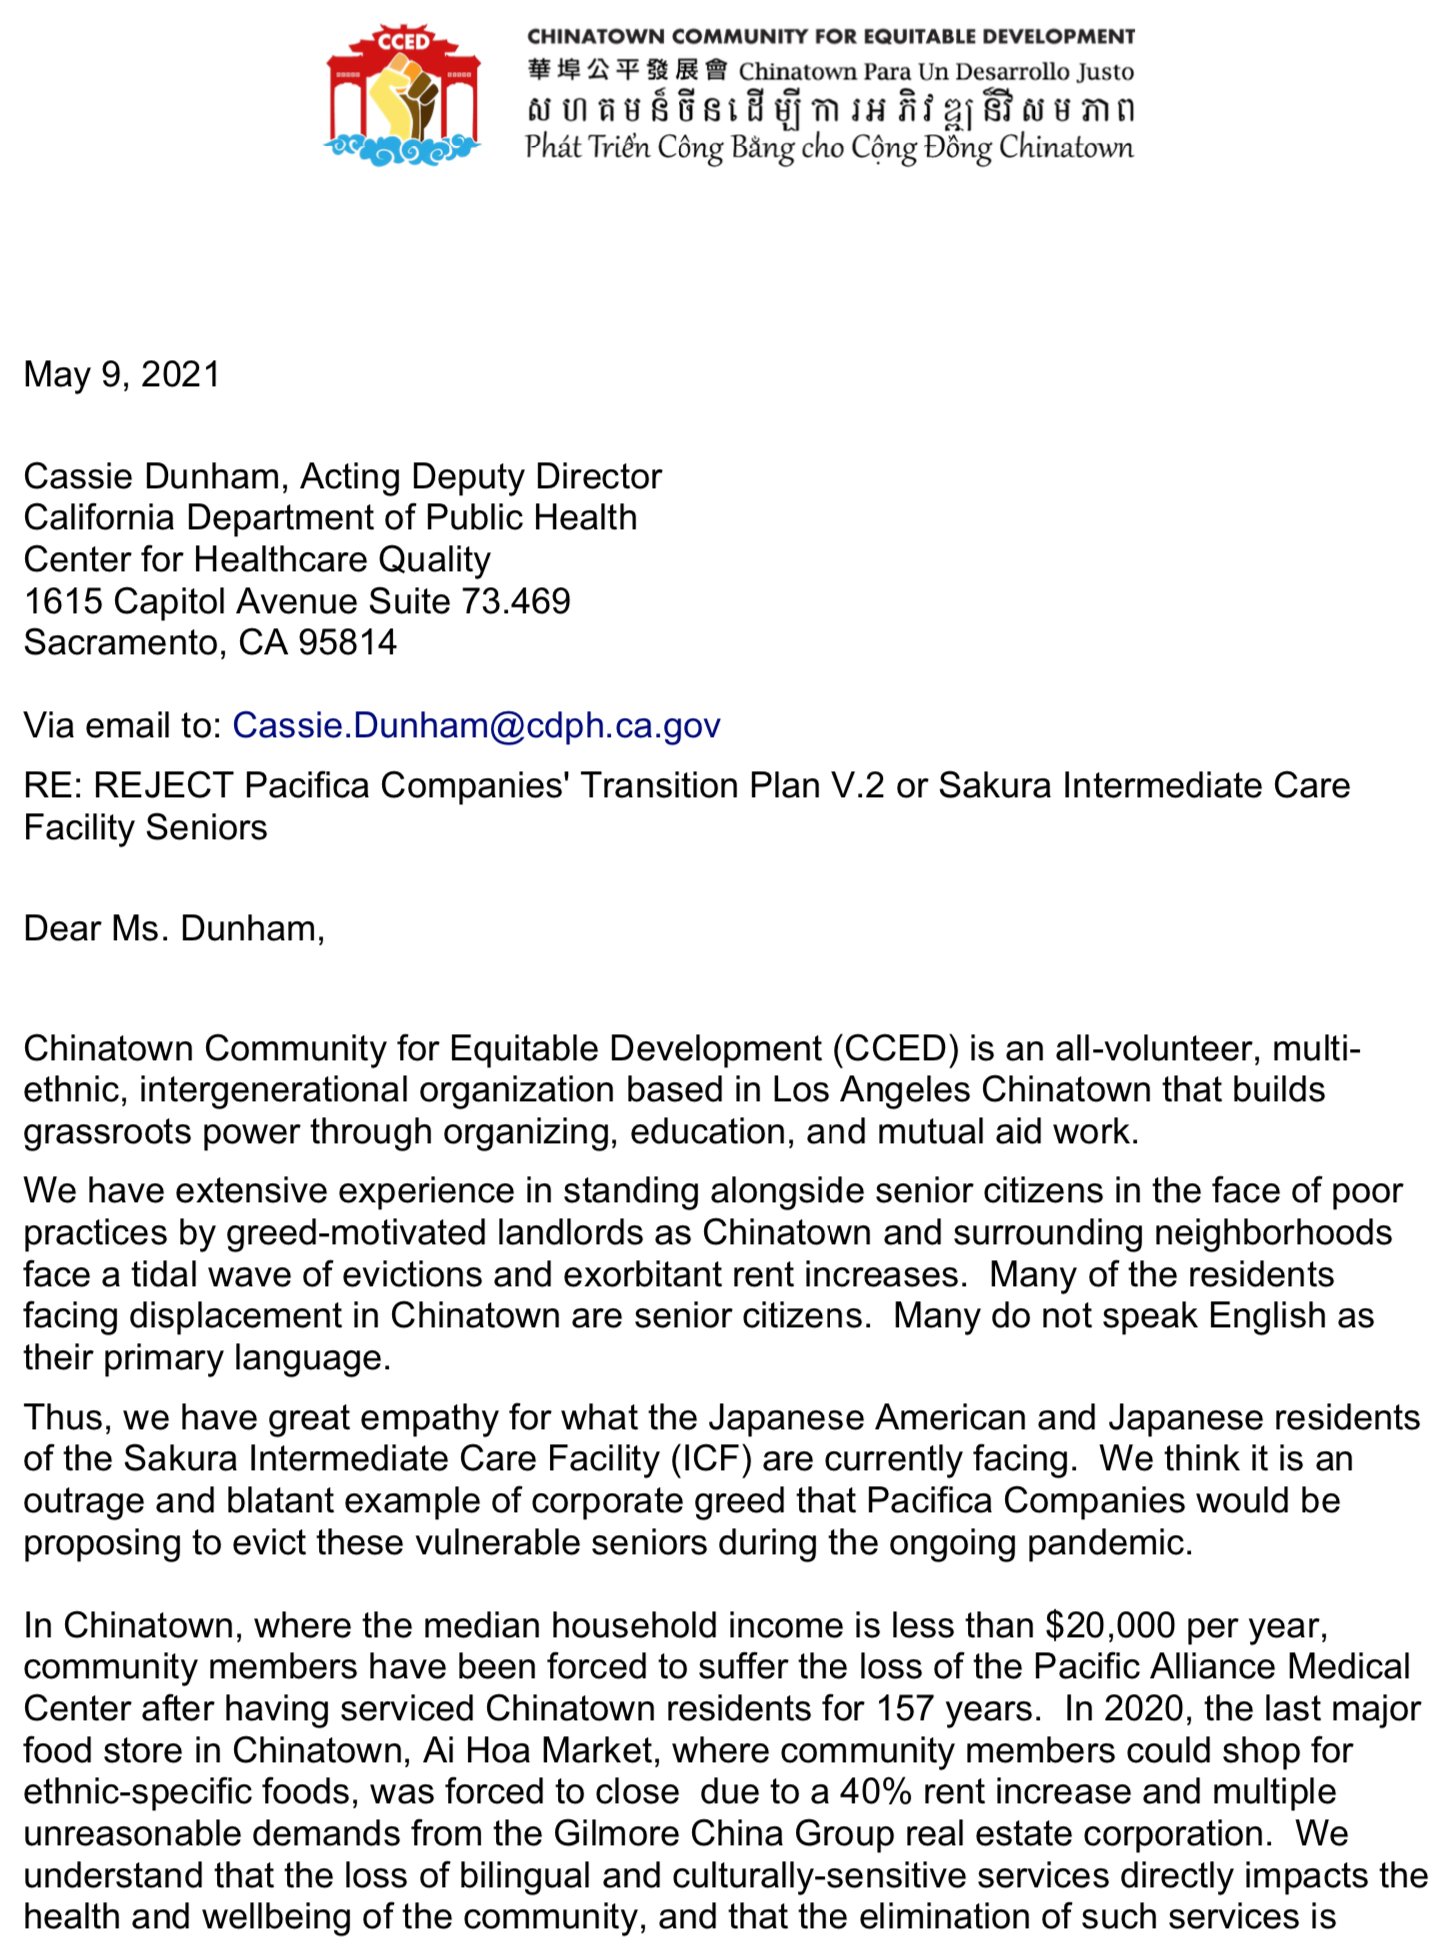 CCED letter to CDPH to Reject Plan v.2 1of2